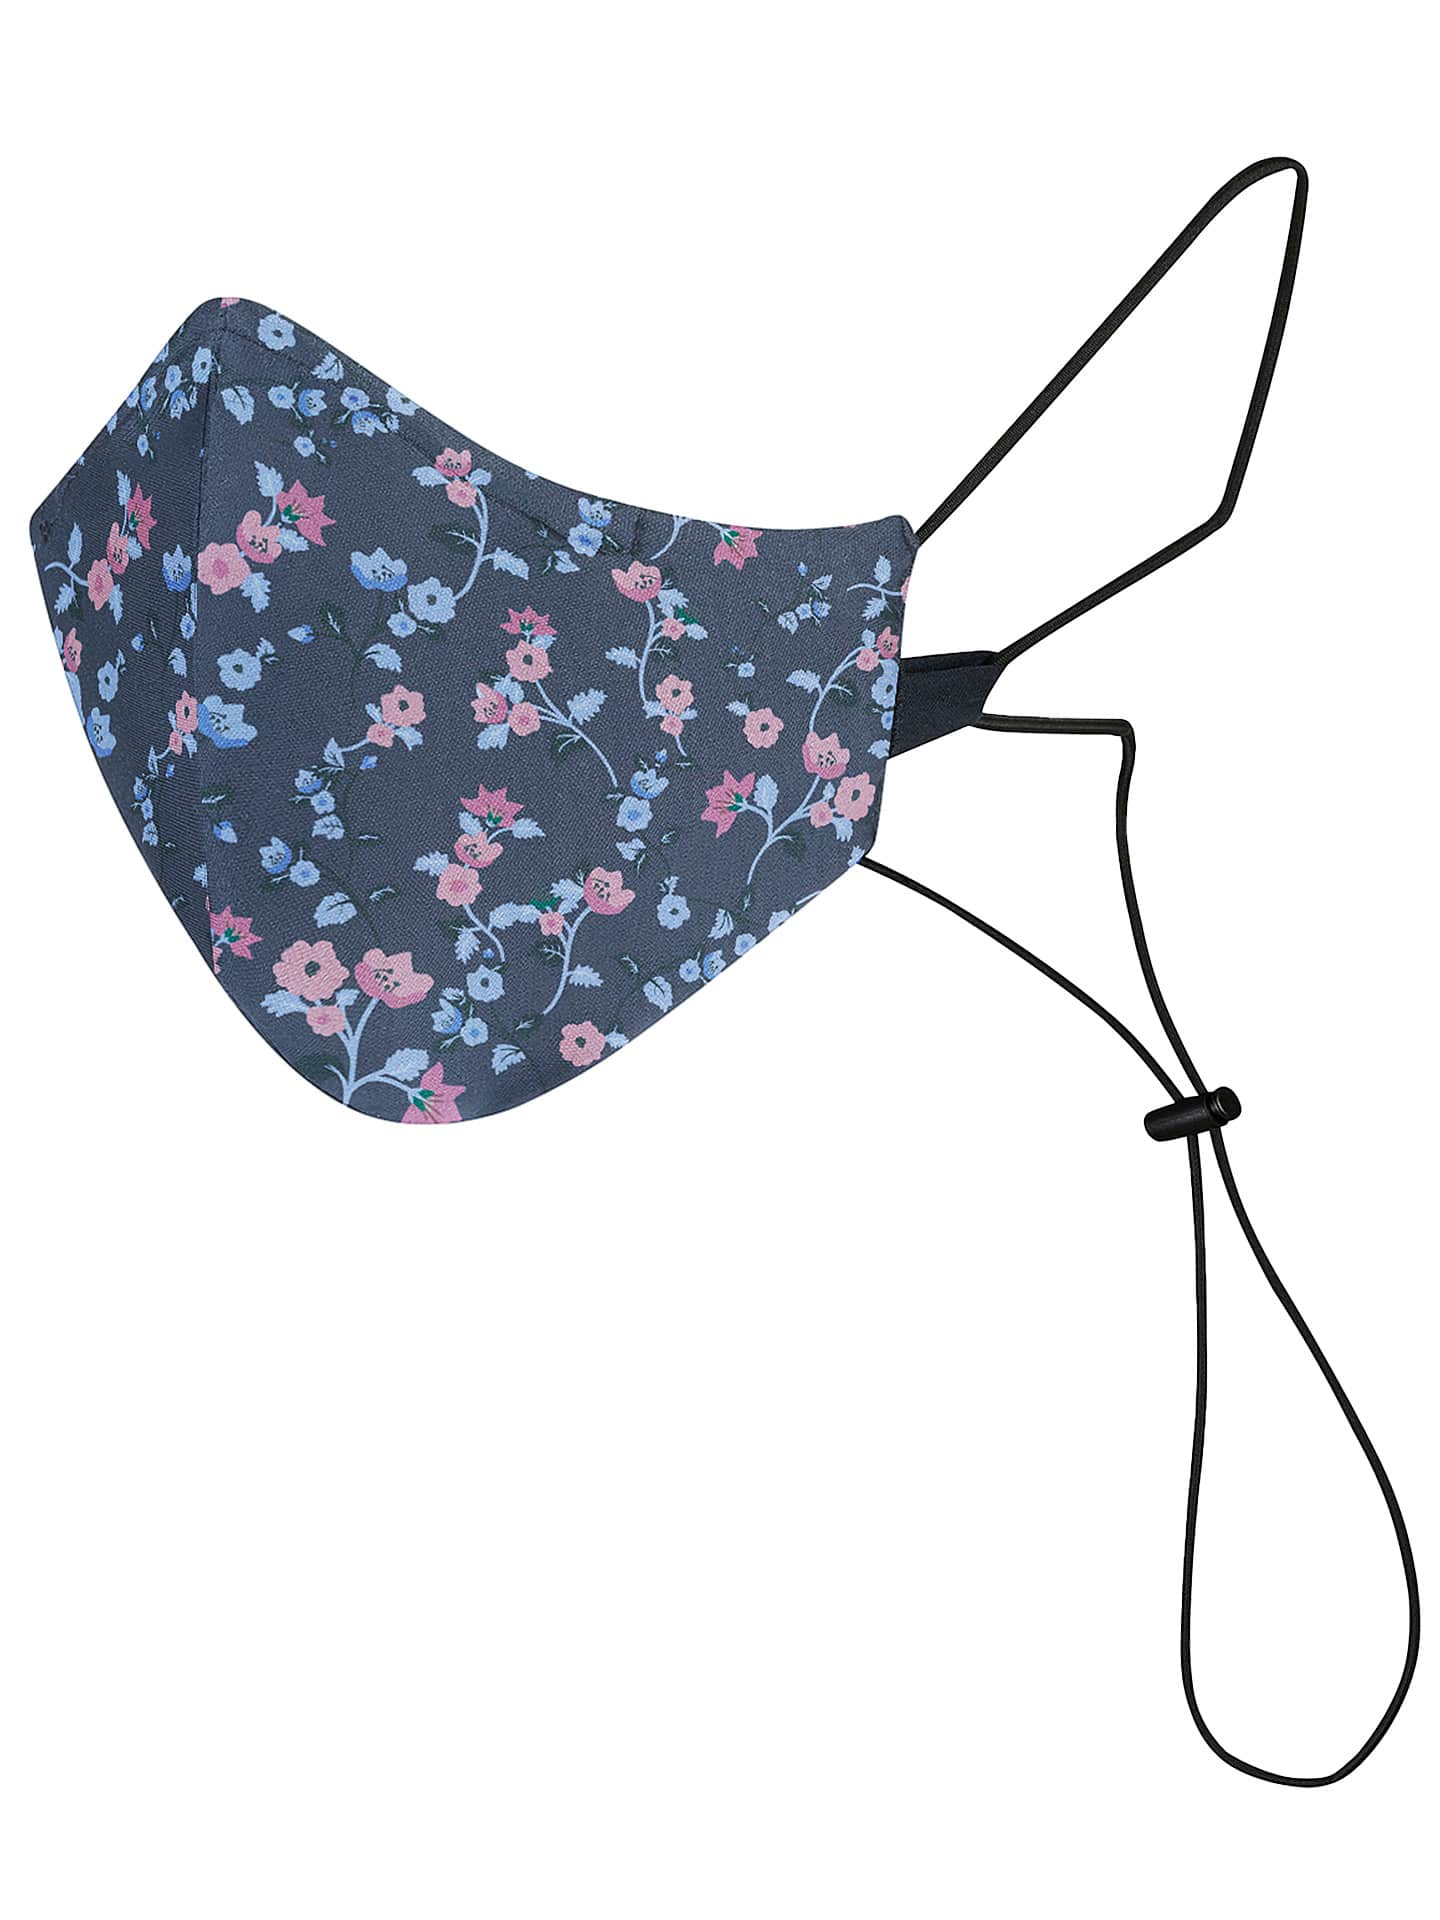 Dark Blue Reusable and Washable Maskk with Blue and Violet Flowers